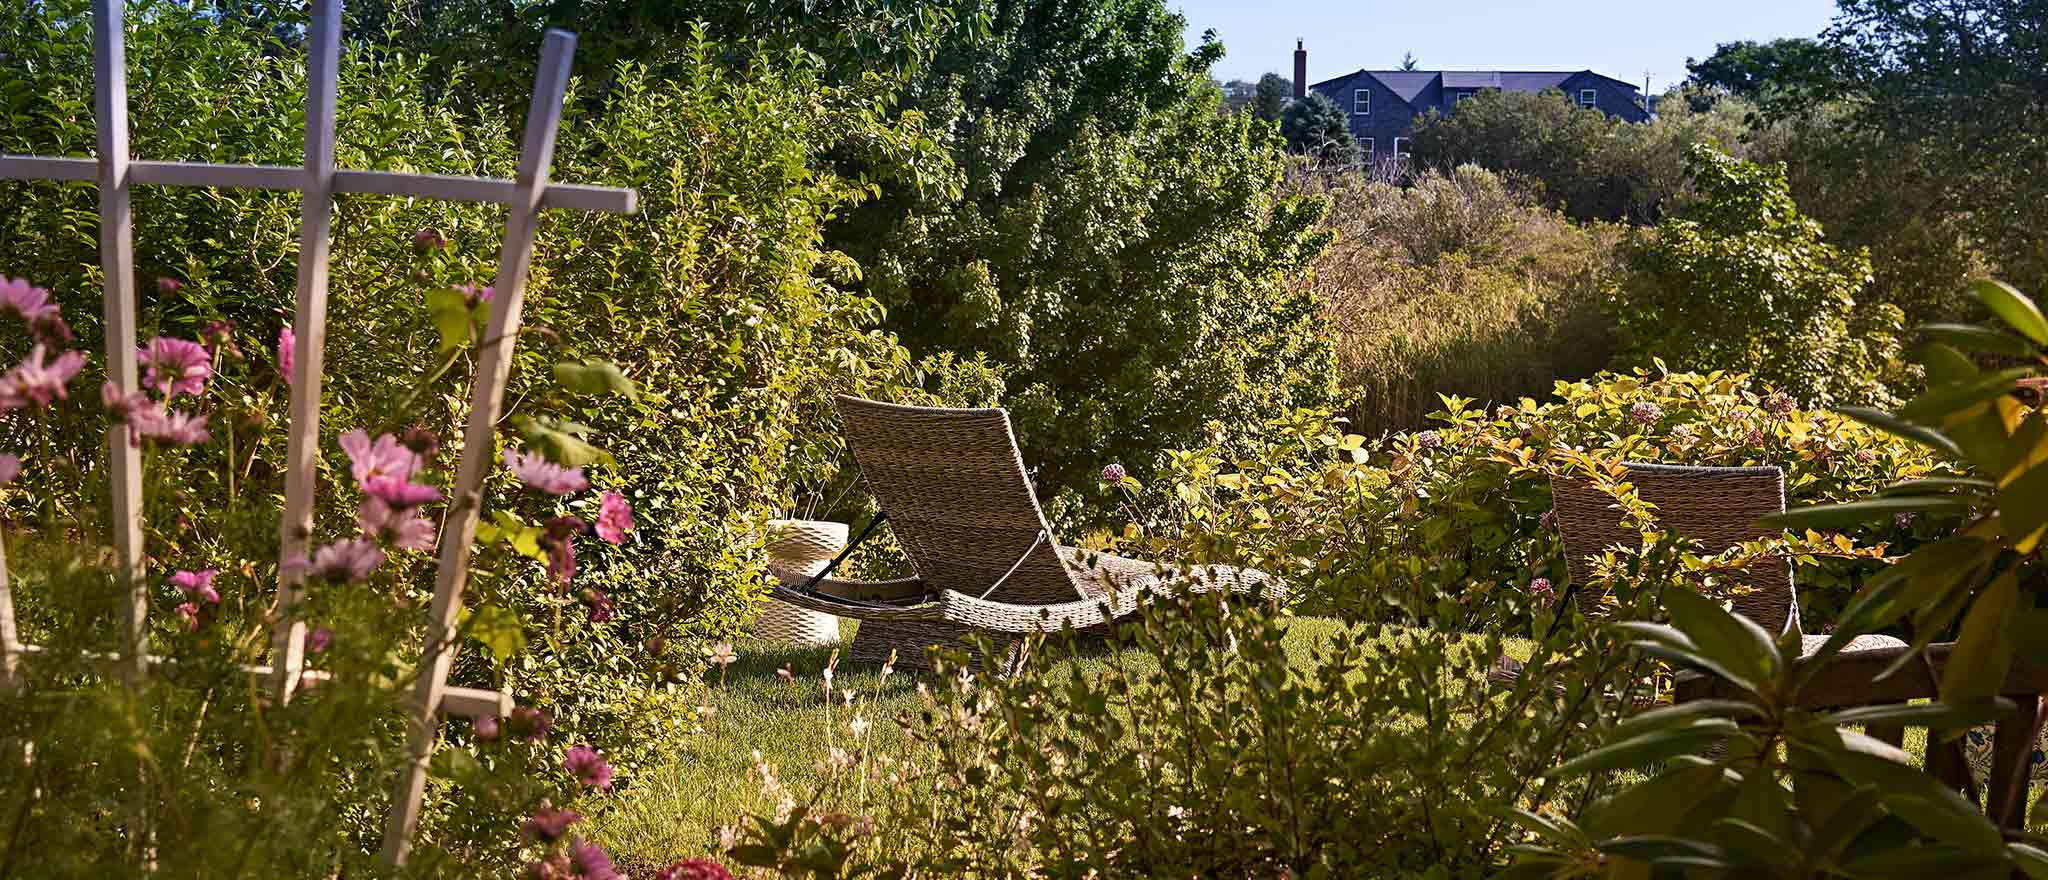 A wicker chaise lounge in the garden surrounded by grass and flowers